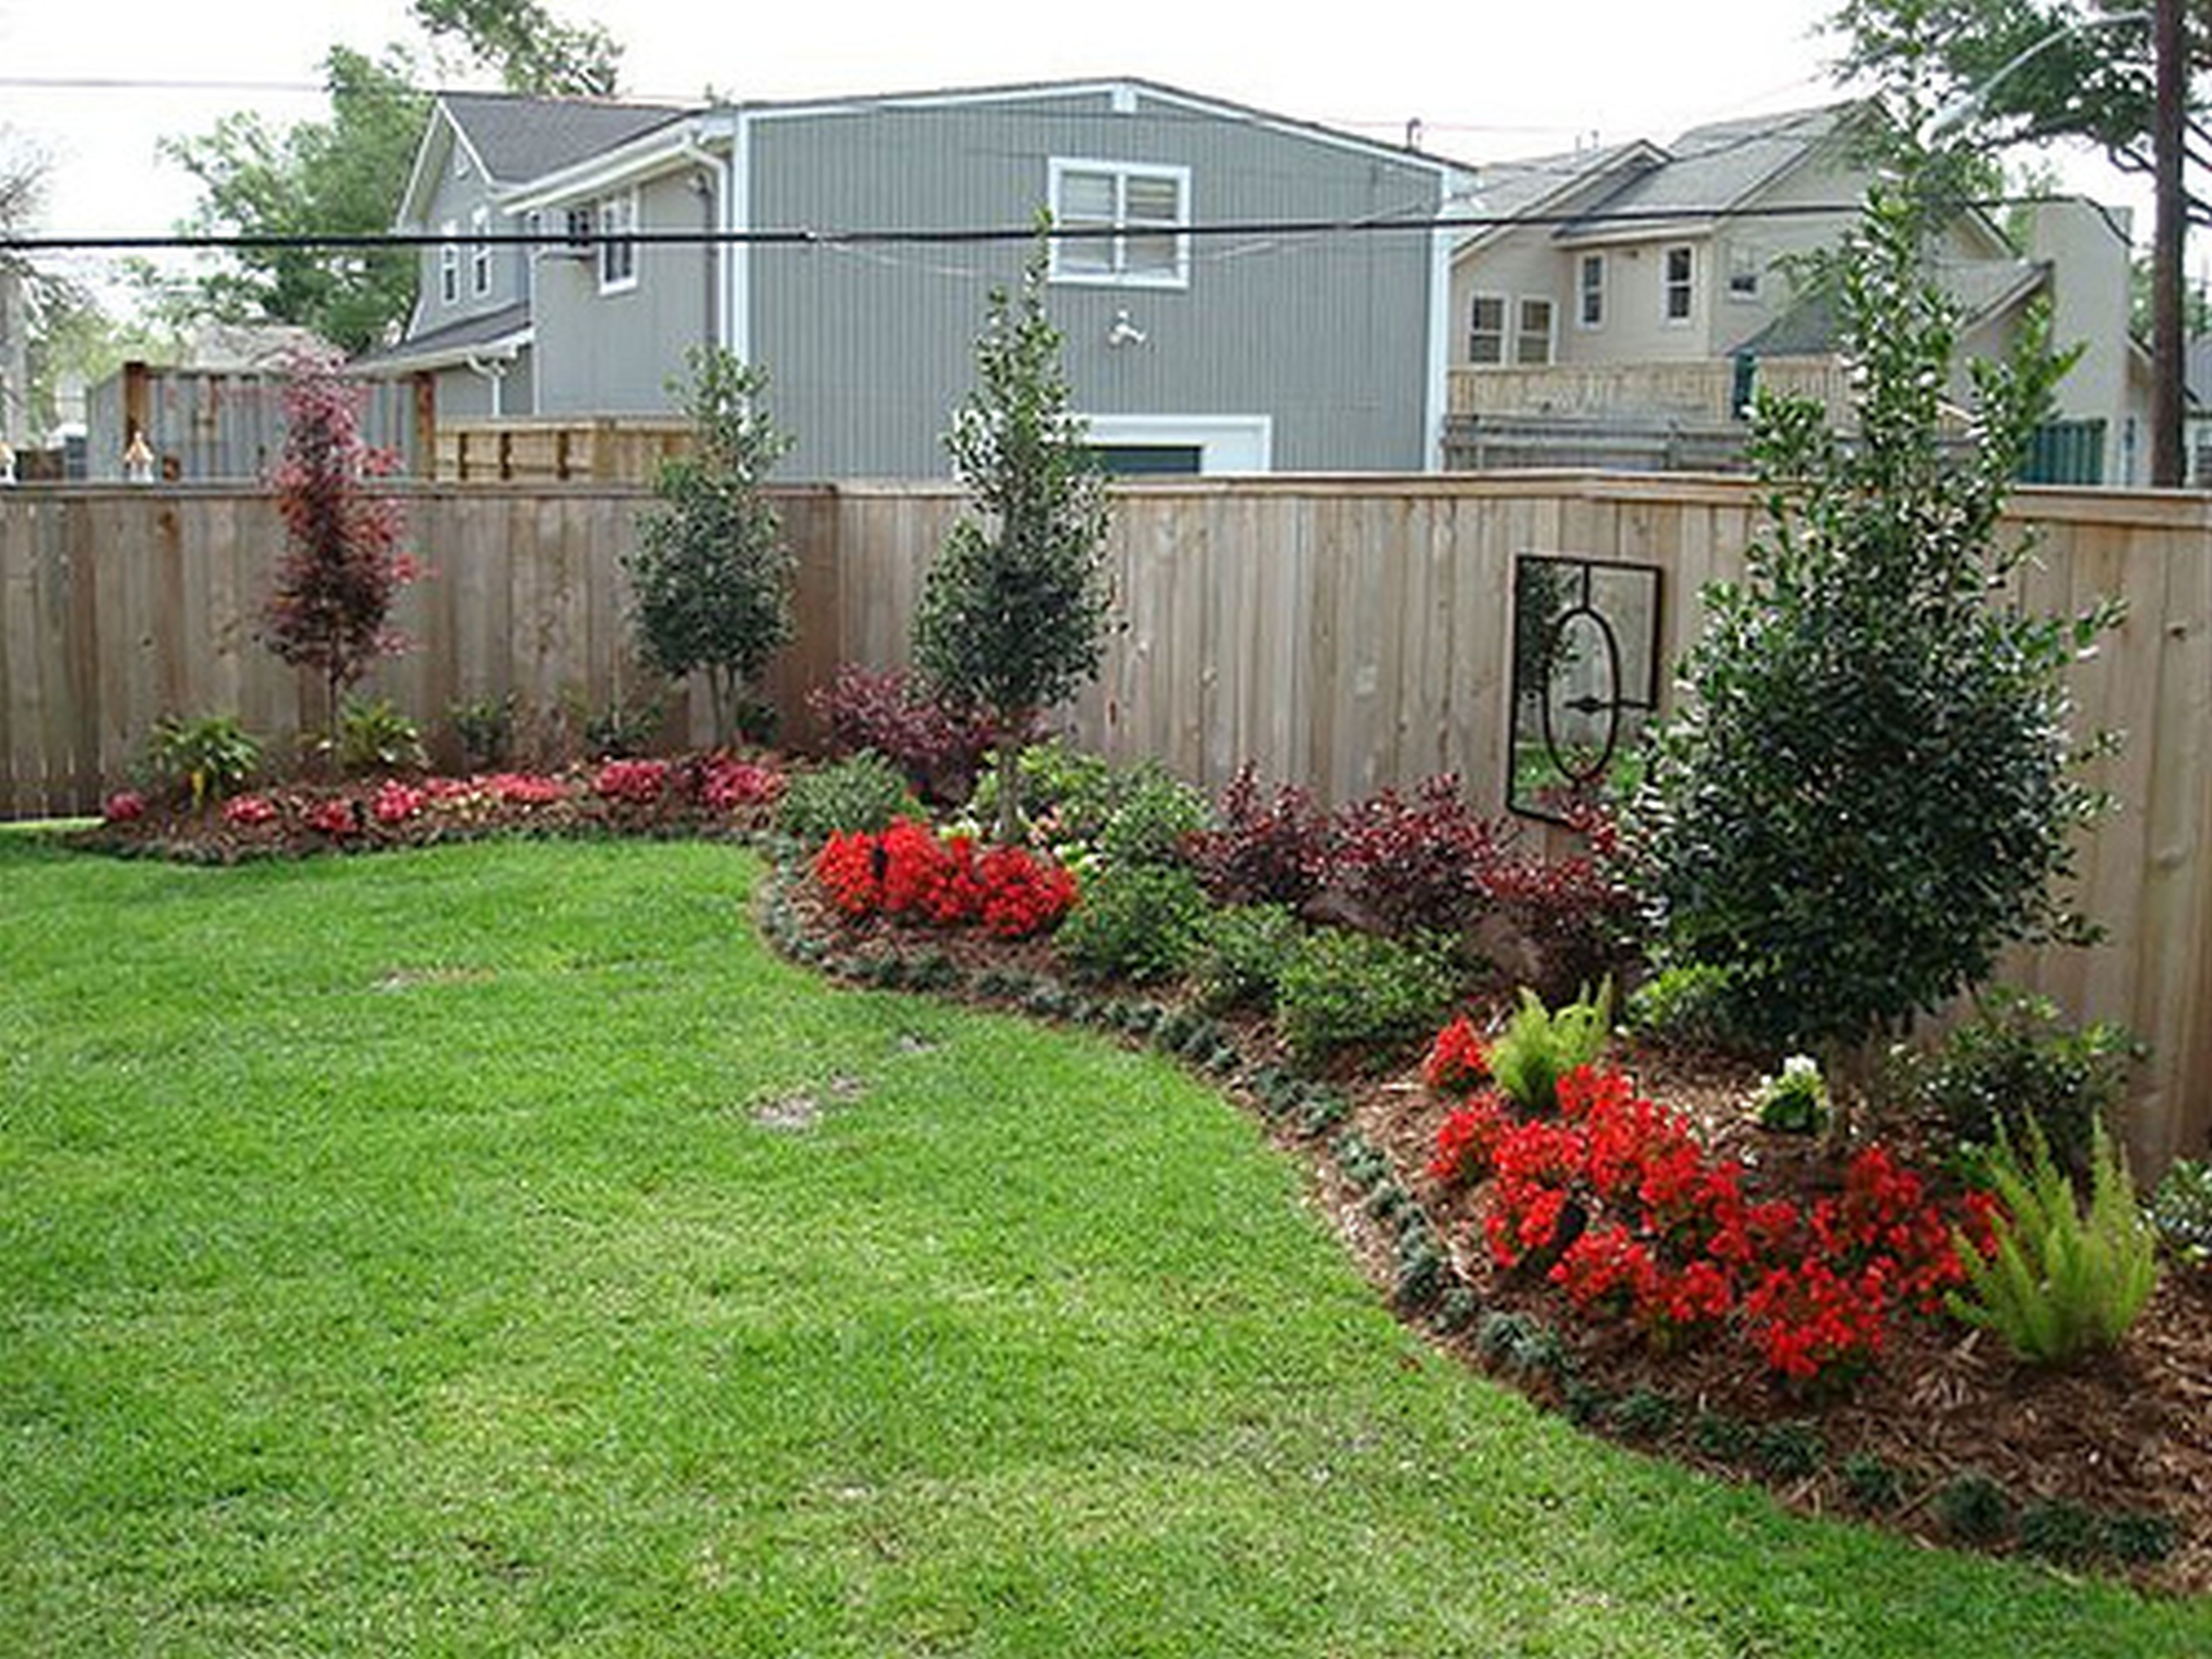 Backyard Landscape Designs With Landscape Design Firms With Easy intended for Landscape Designs For Backyard